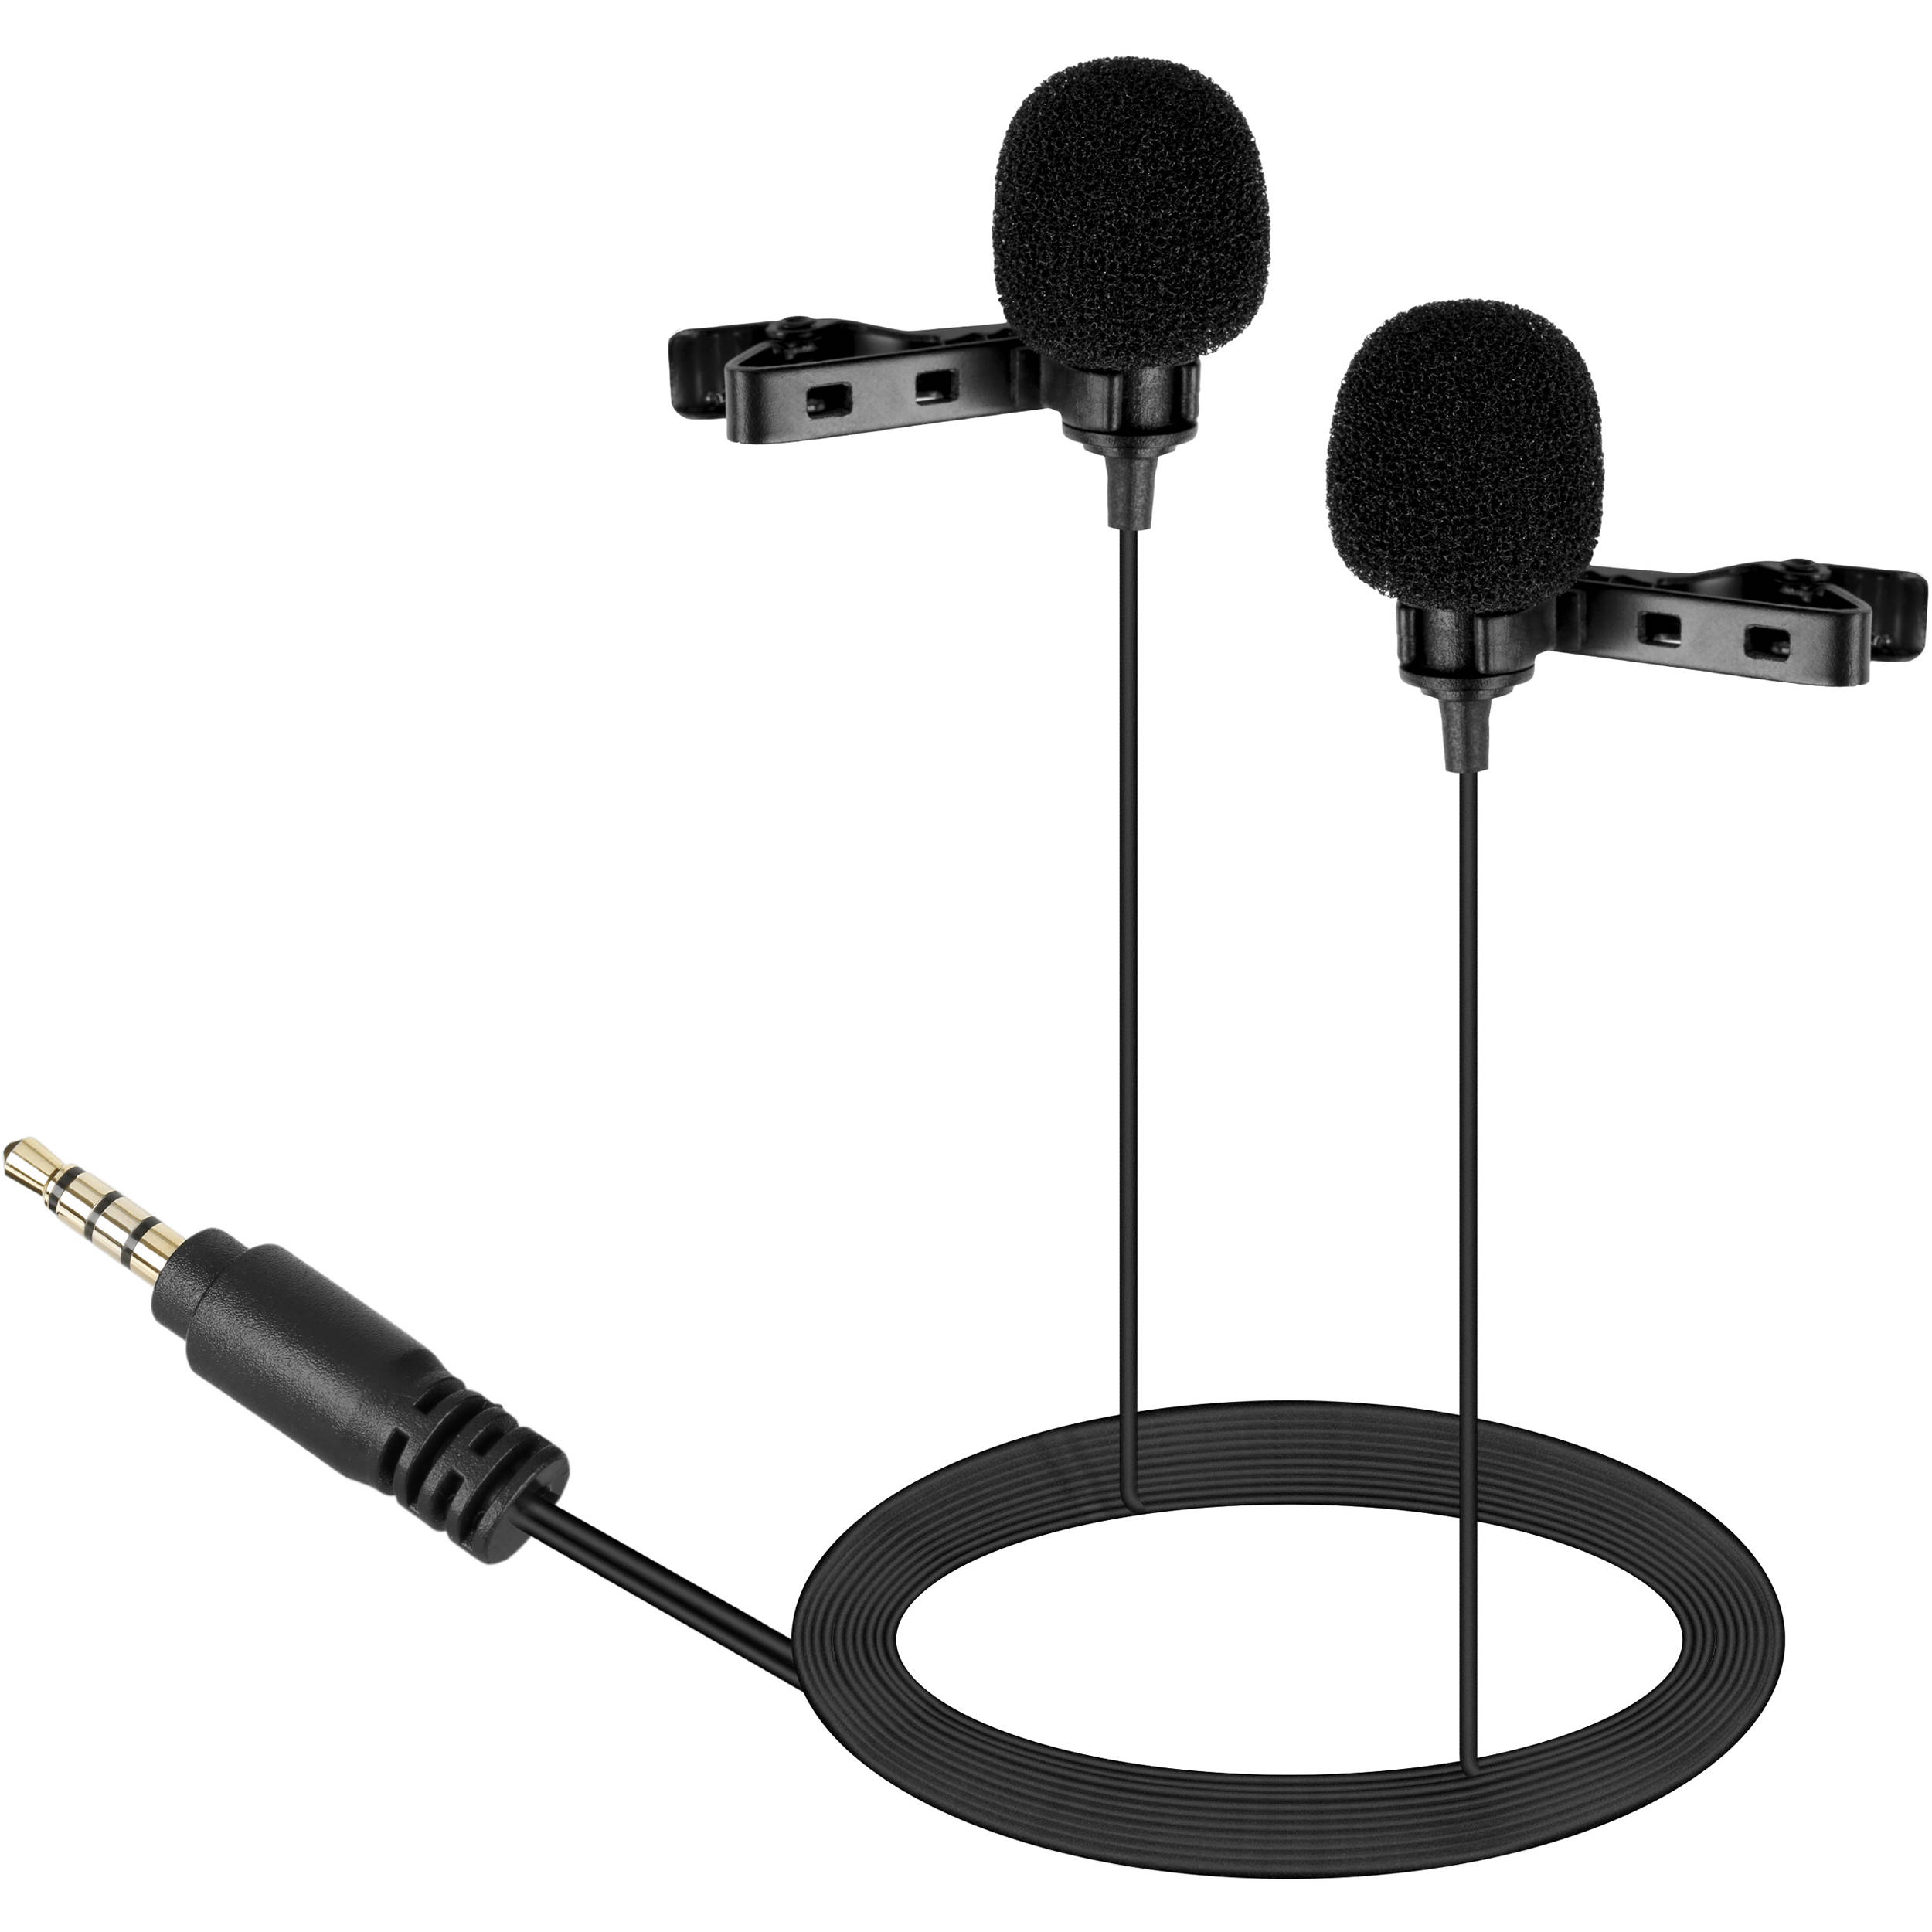 Boya By Lm400 Dual Lavalier Microphone For Mobile Devices